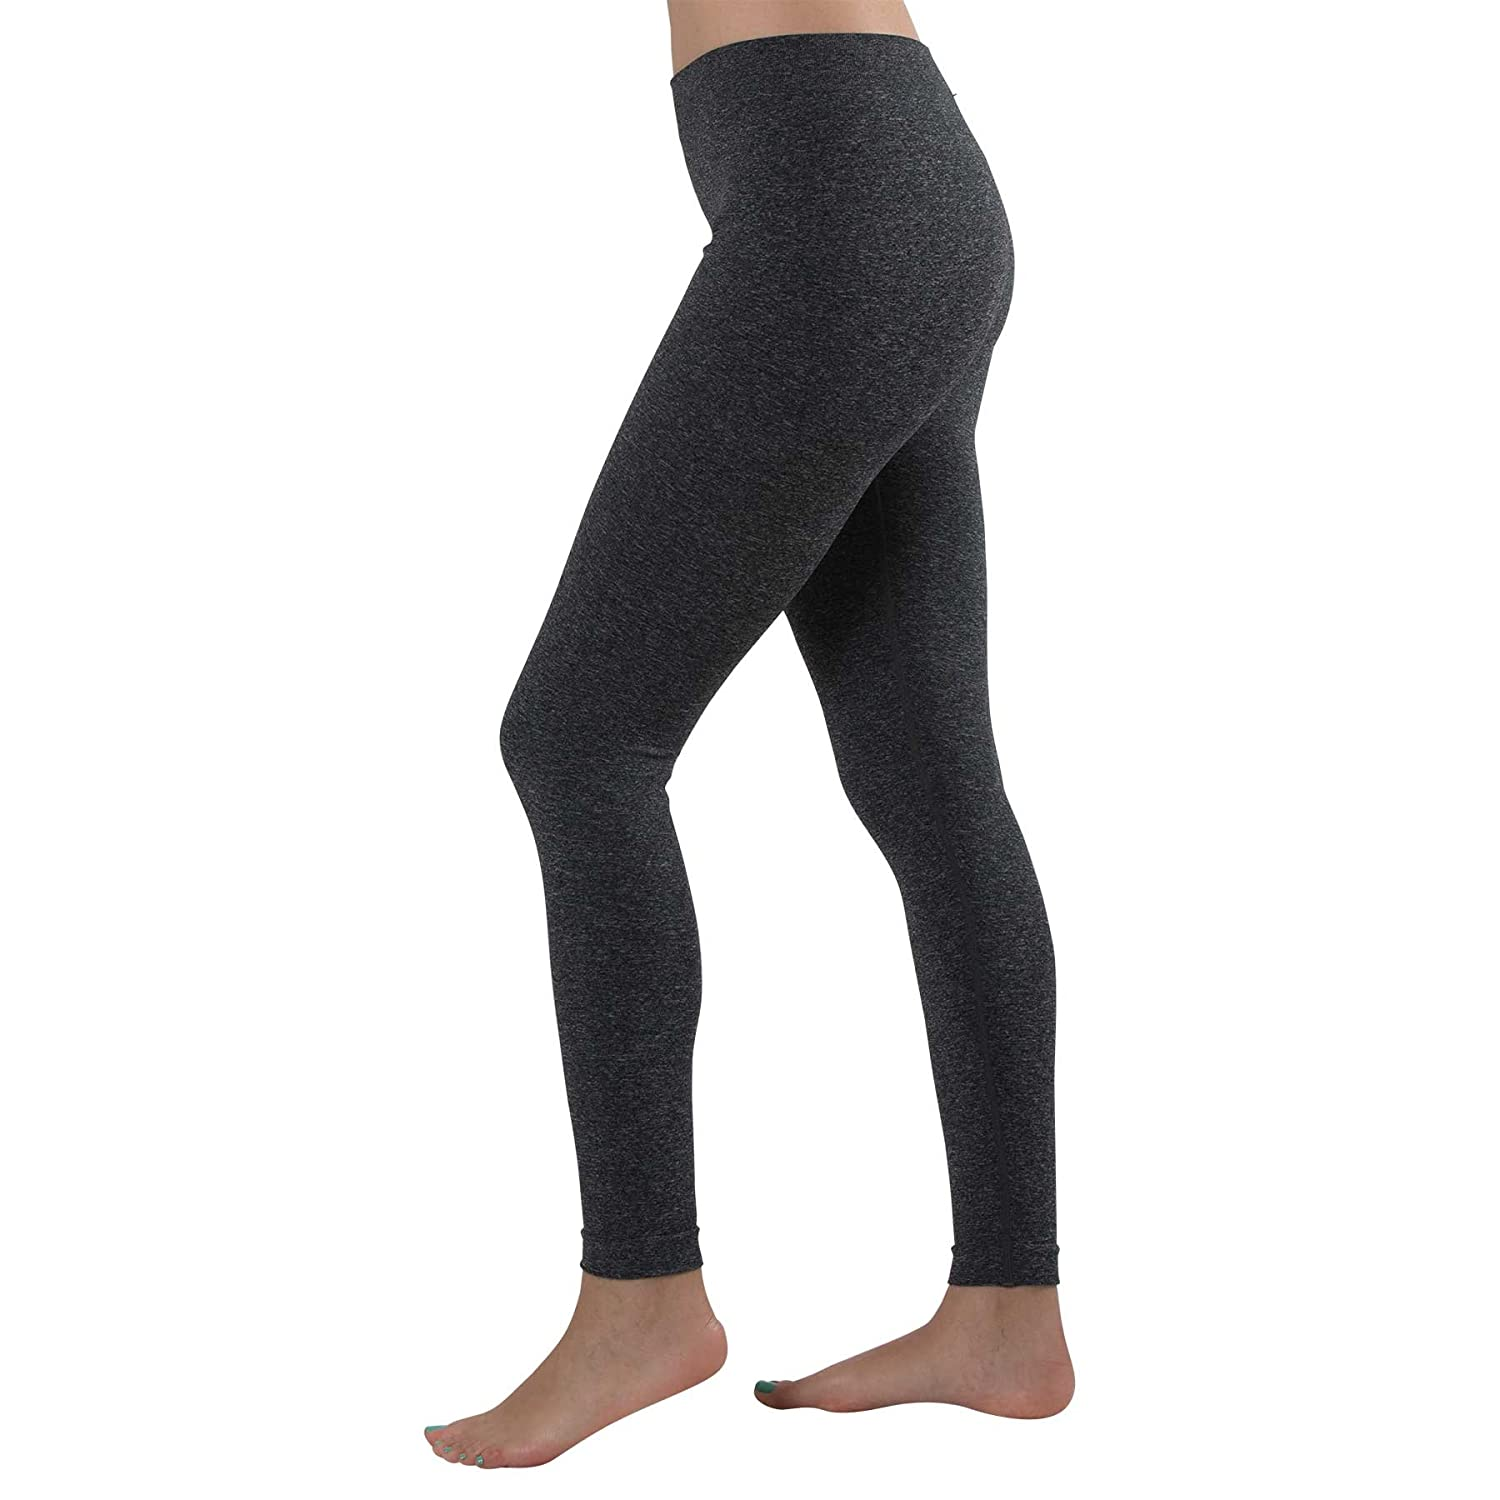 dfbf7f33c1b Women's Athletic Workout Leggings – Active Yoga Compression Fitness Leggings